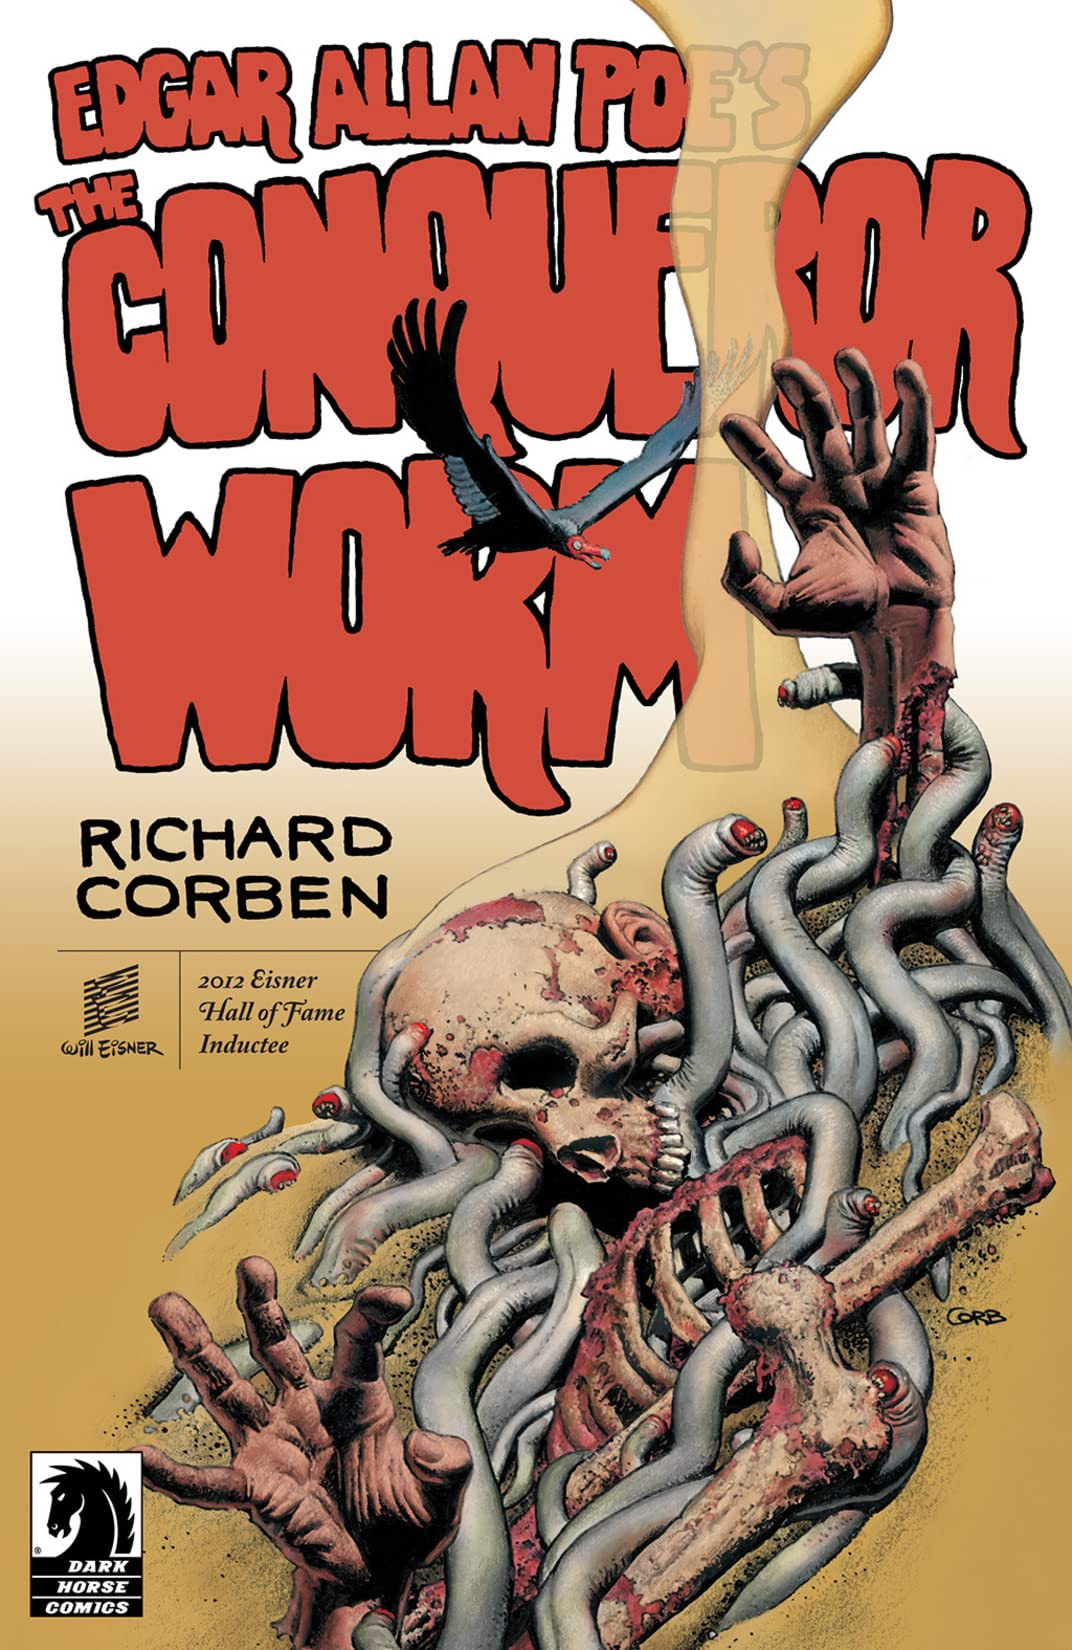 Edgar Allan Poe's The Conqueror Worm #0